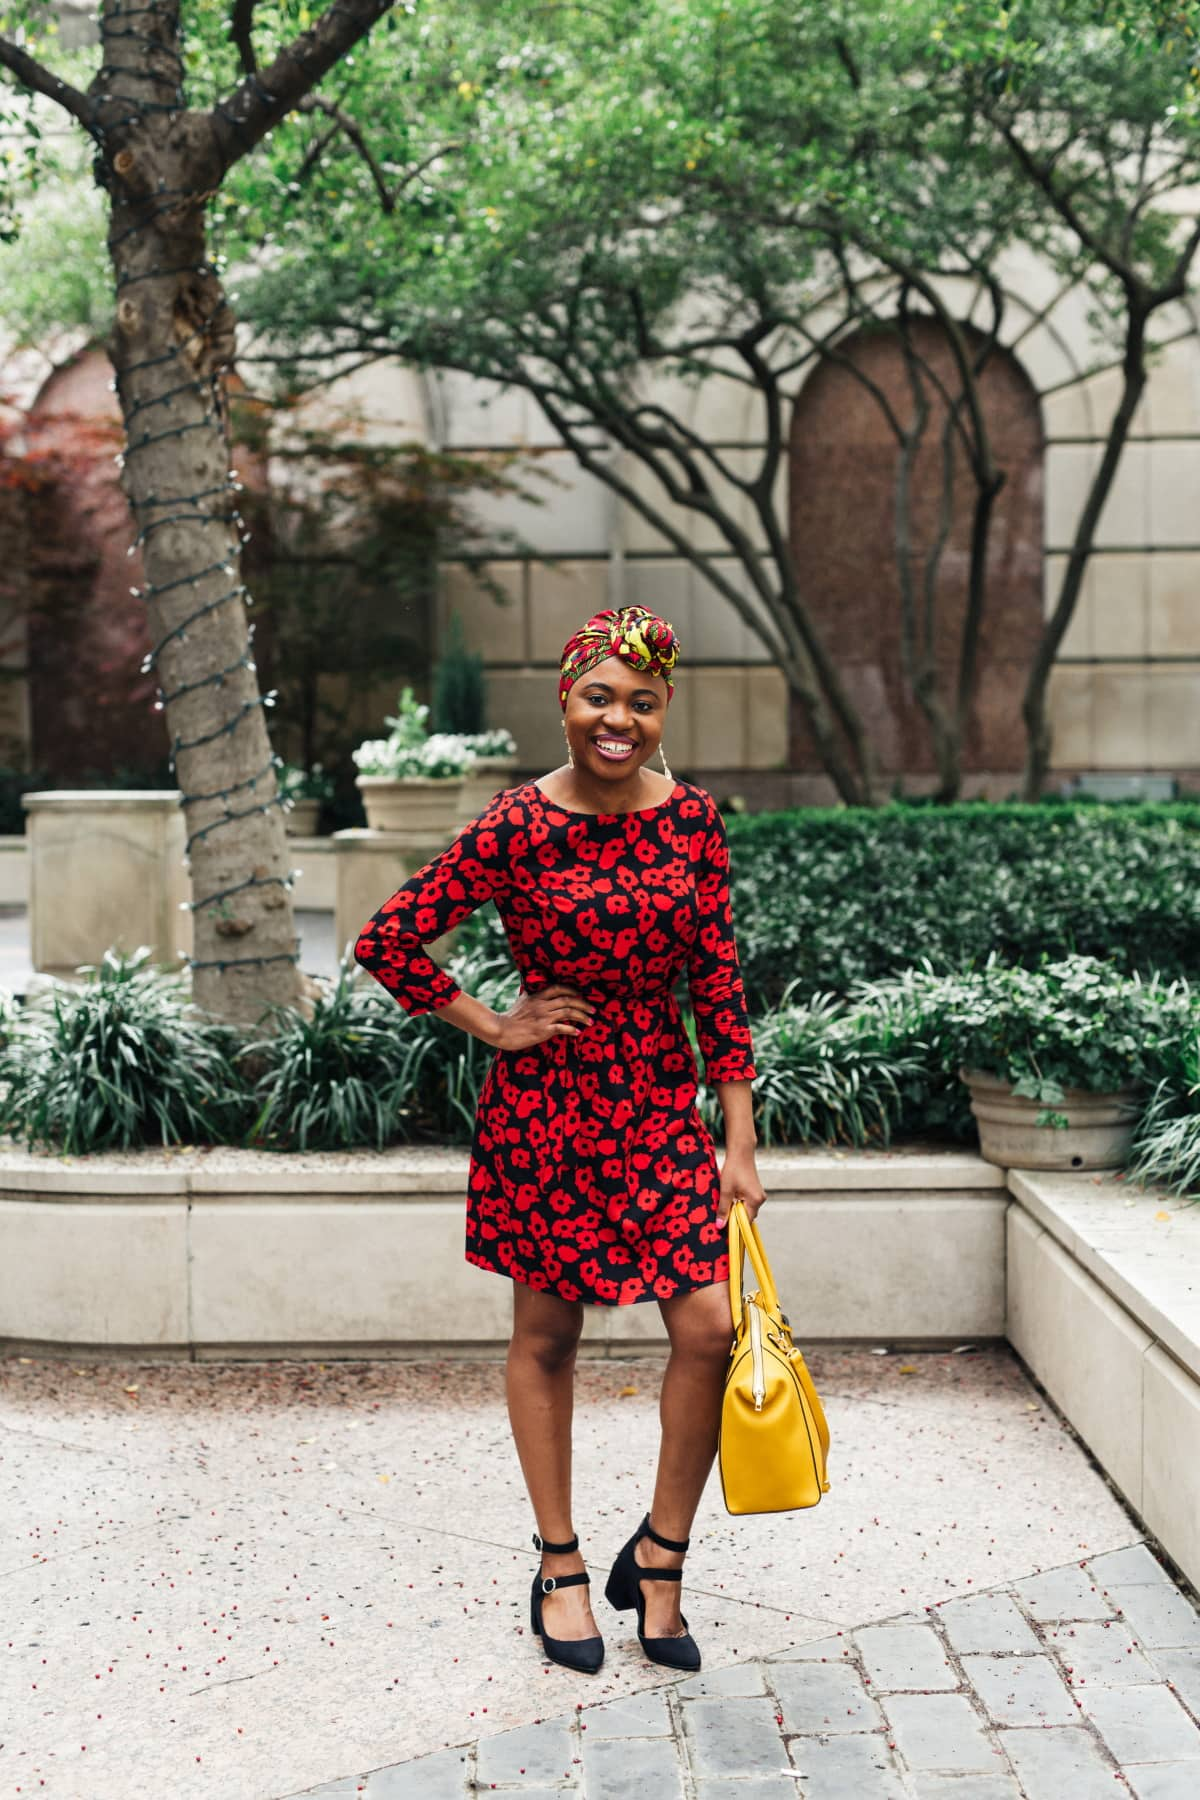 New Jersey fashion blogger shows us how A unique workwear look that embraces your culture. Easily transition this summer style from office wear to church outfit, date night, and casual everyday wear. #africantrends #springstyle #nigerianfashion #headpiece